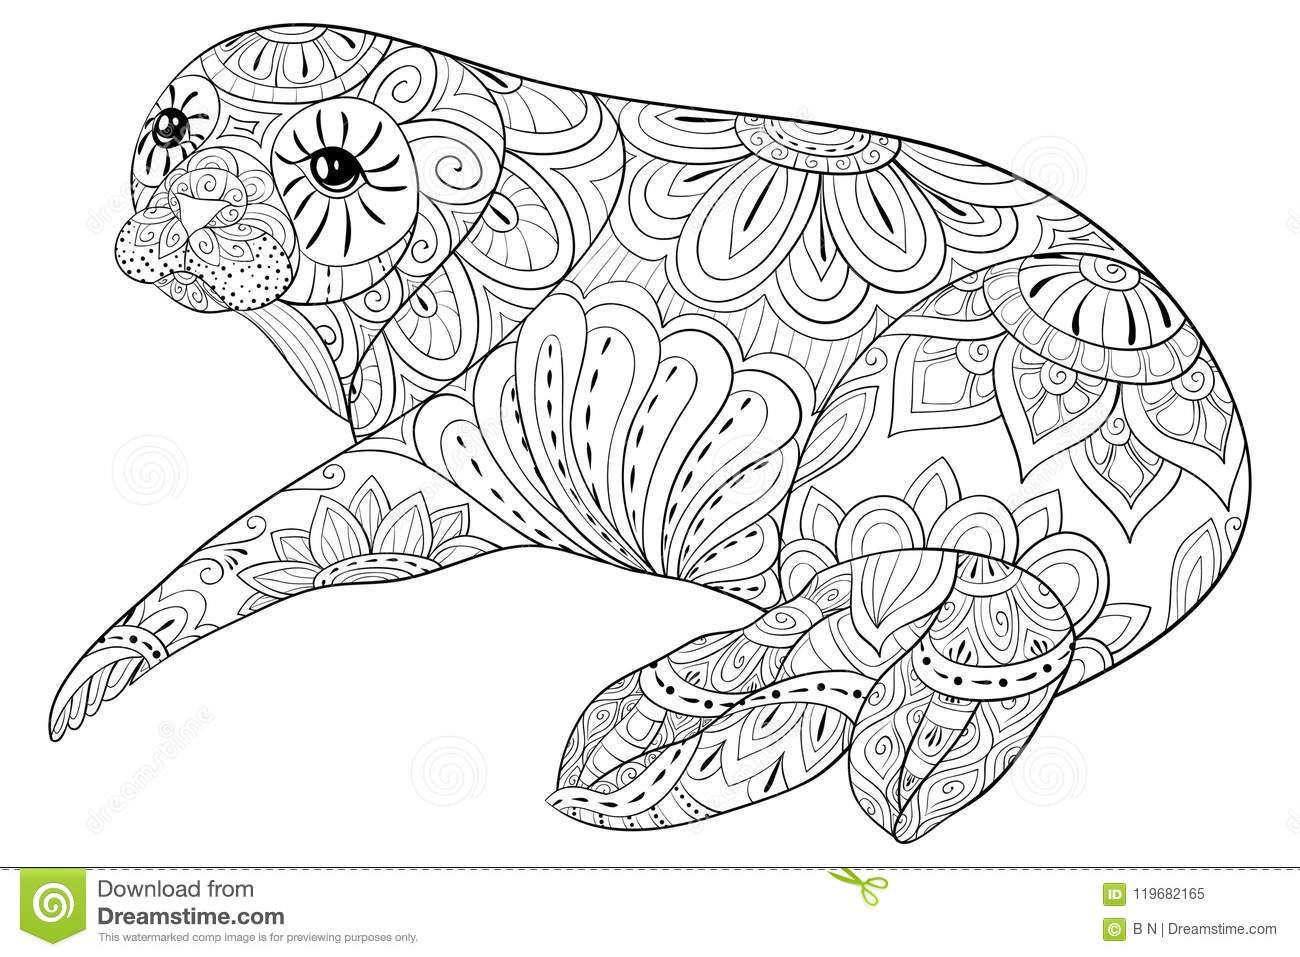 Graphic Stock Free Trial Adult Coloring Book Page A Cute Seal For Relaxing Zen Art